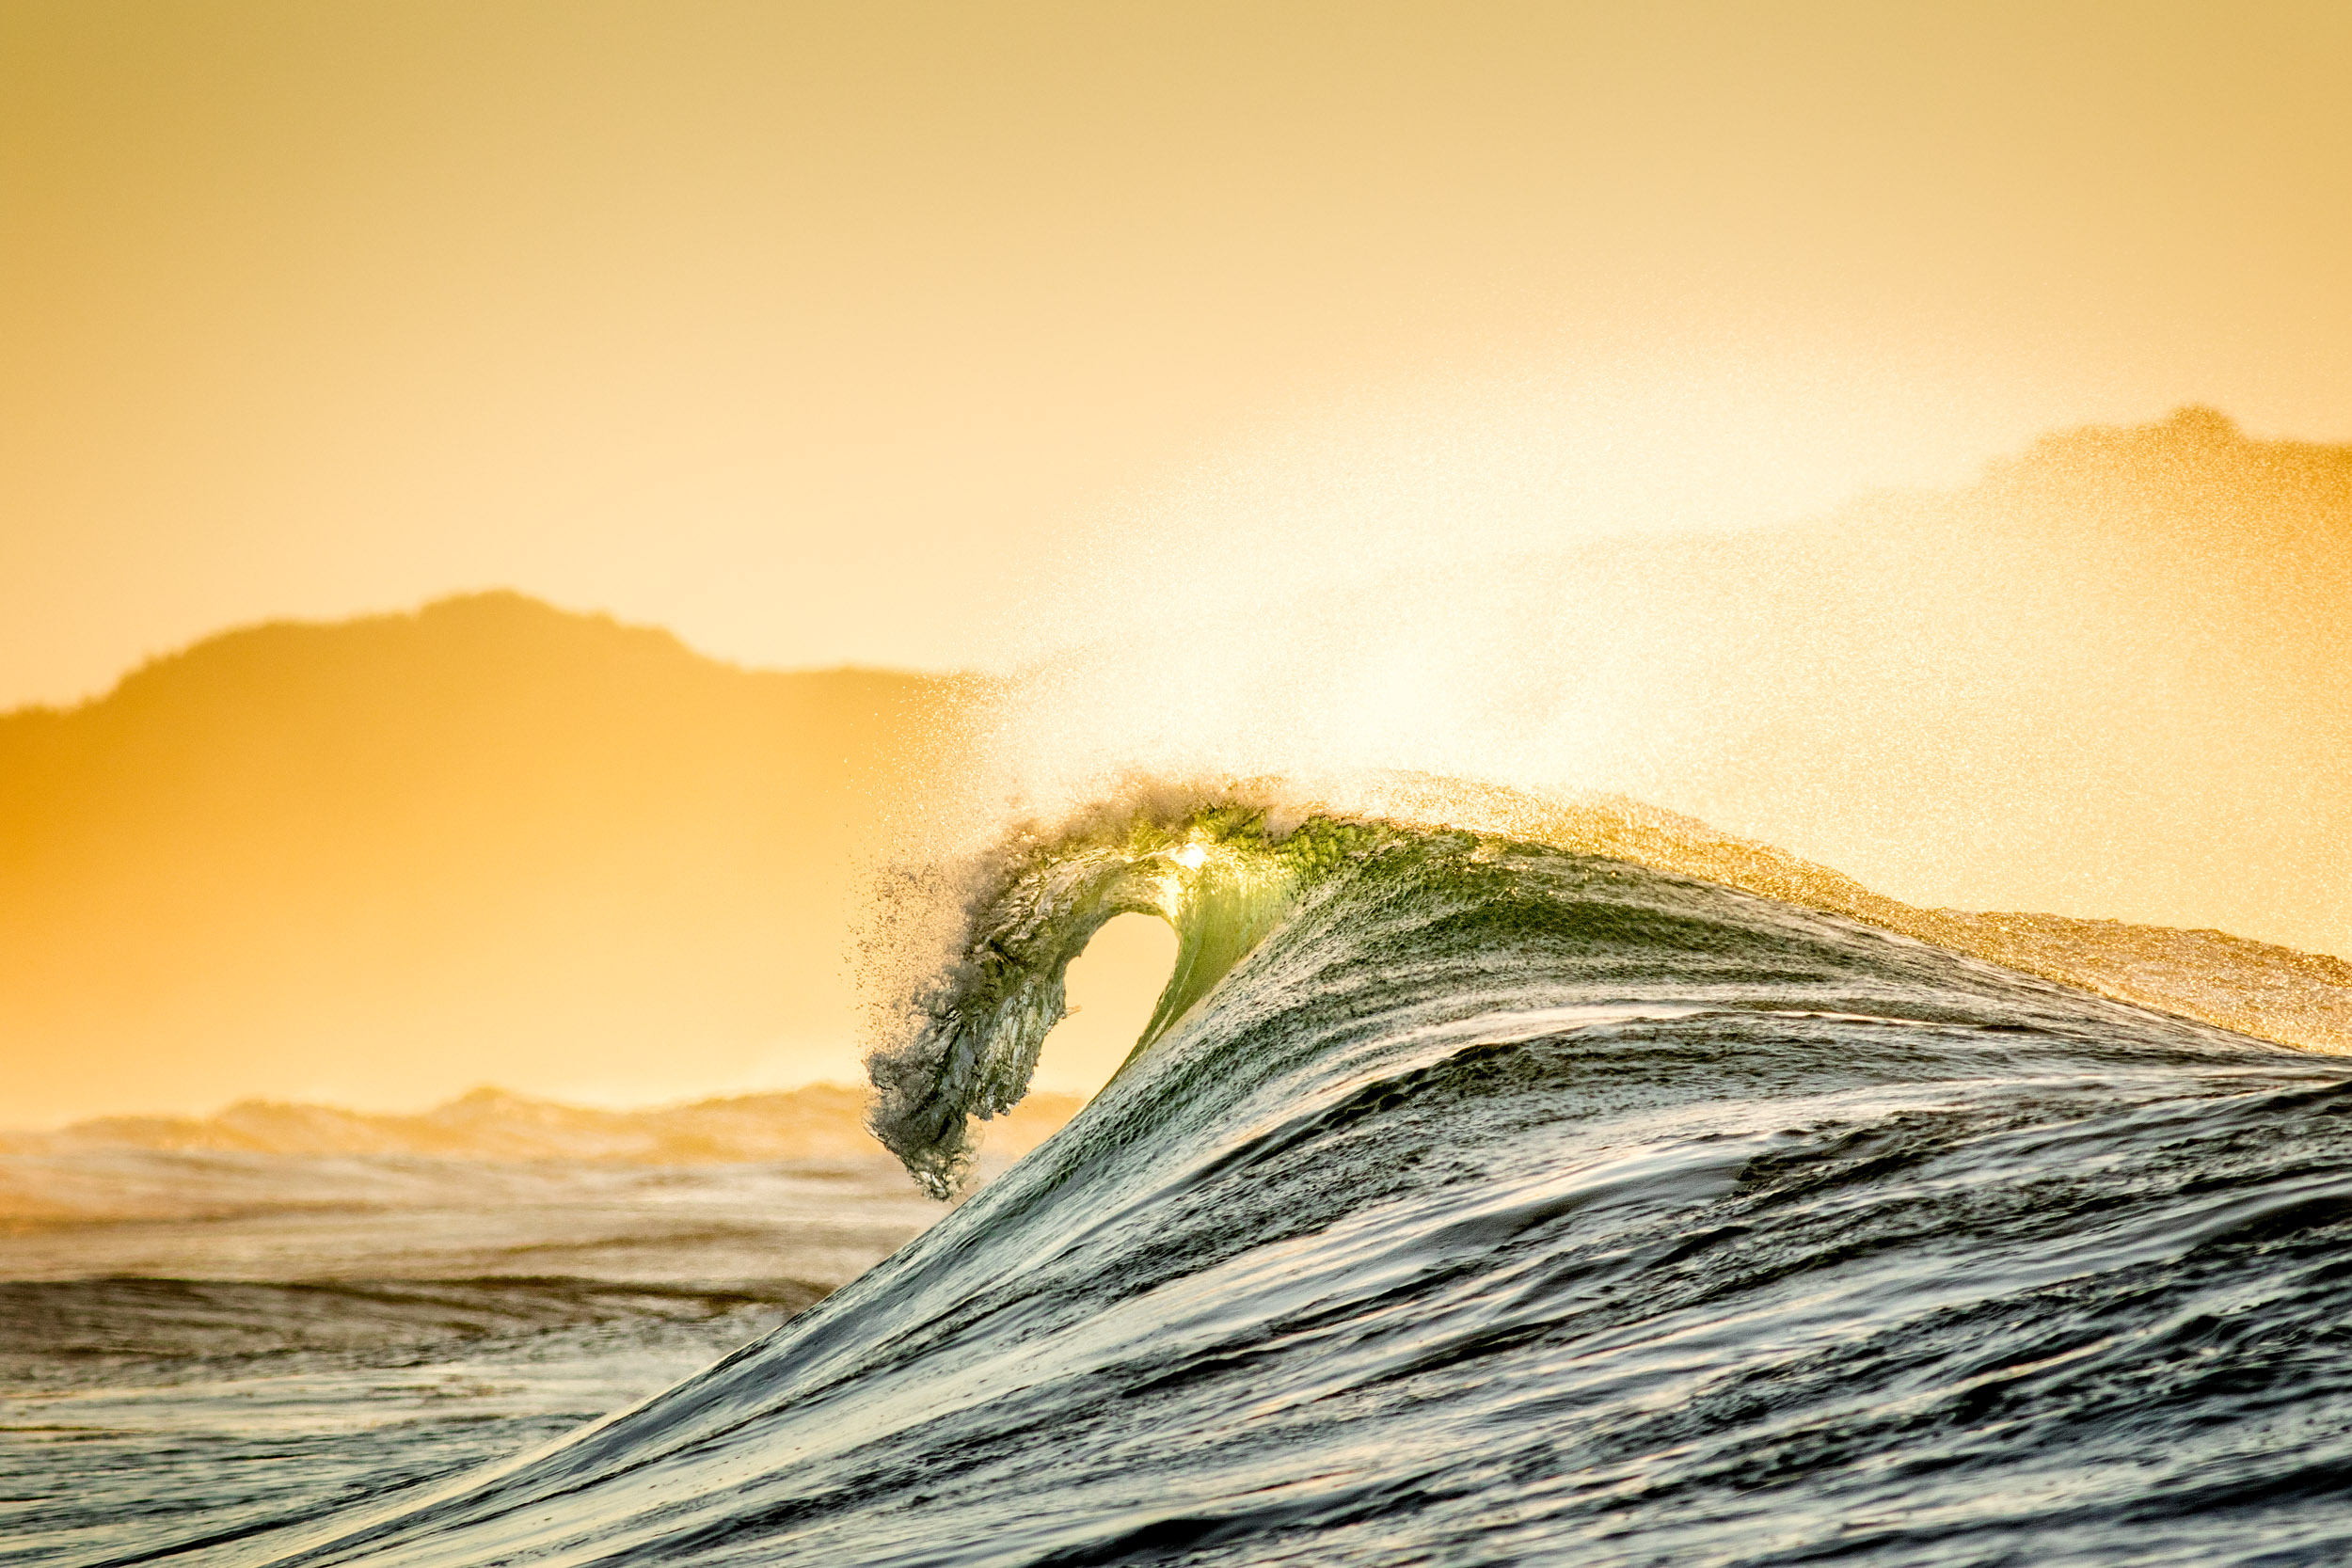 golden-empty-wave-coffs-coast.jpg